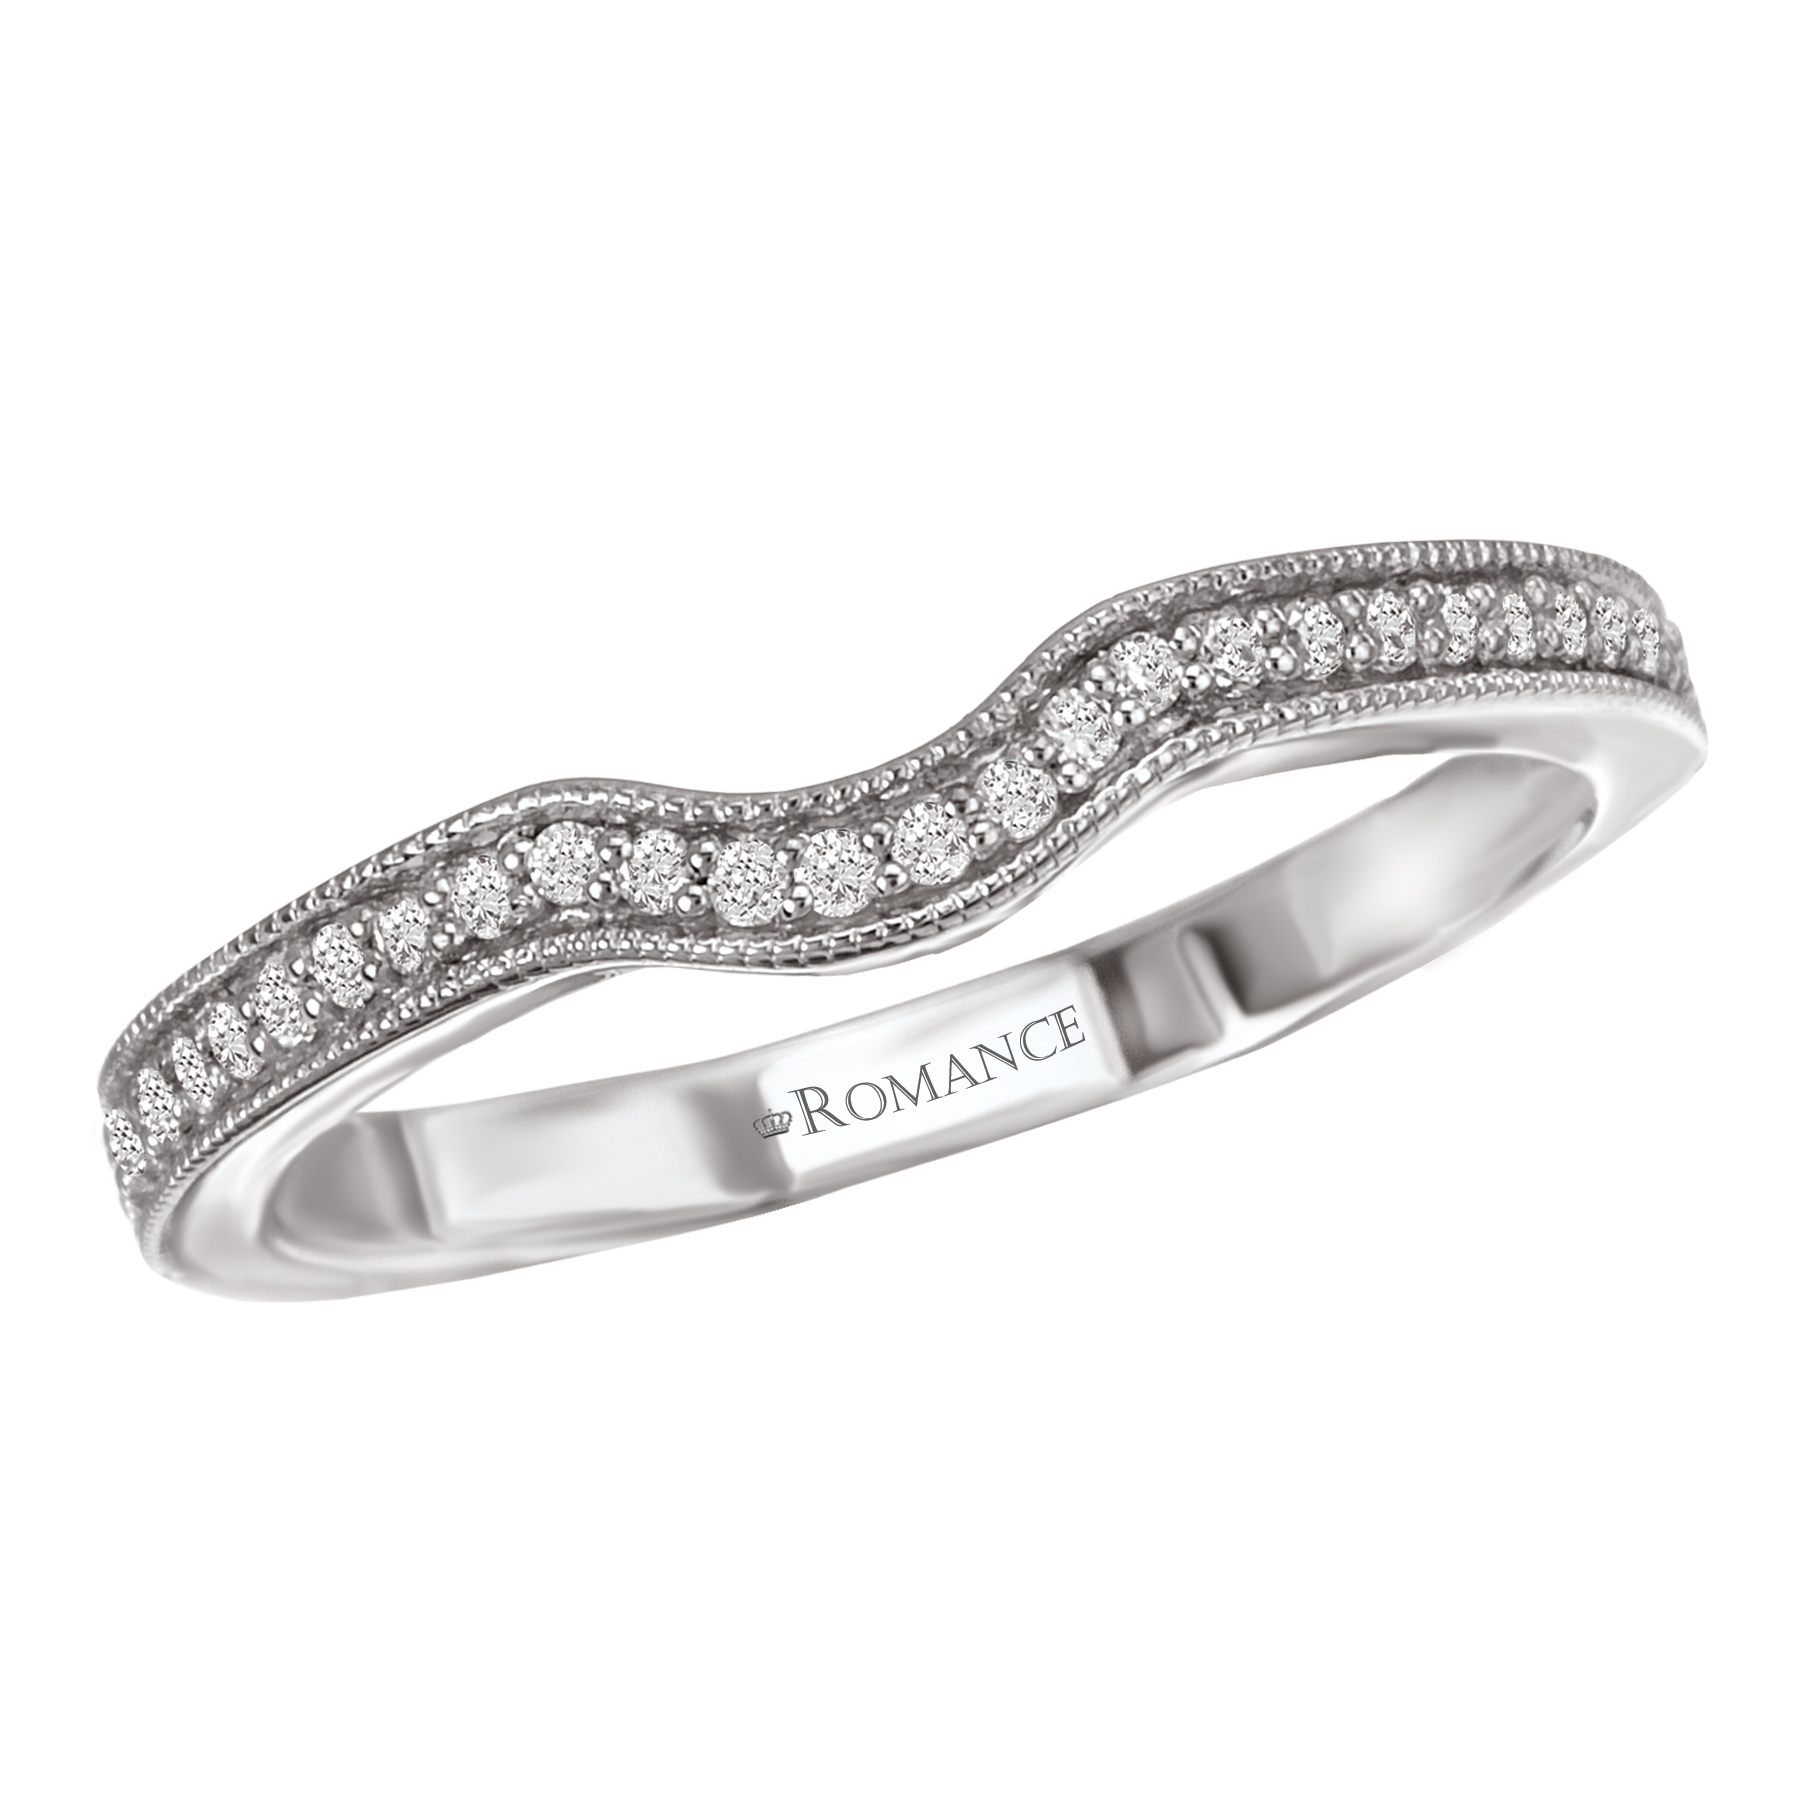 Romance Wedding Bands 117221-W product image